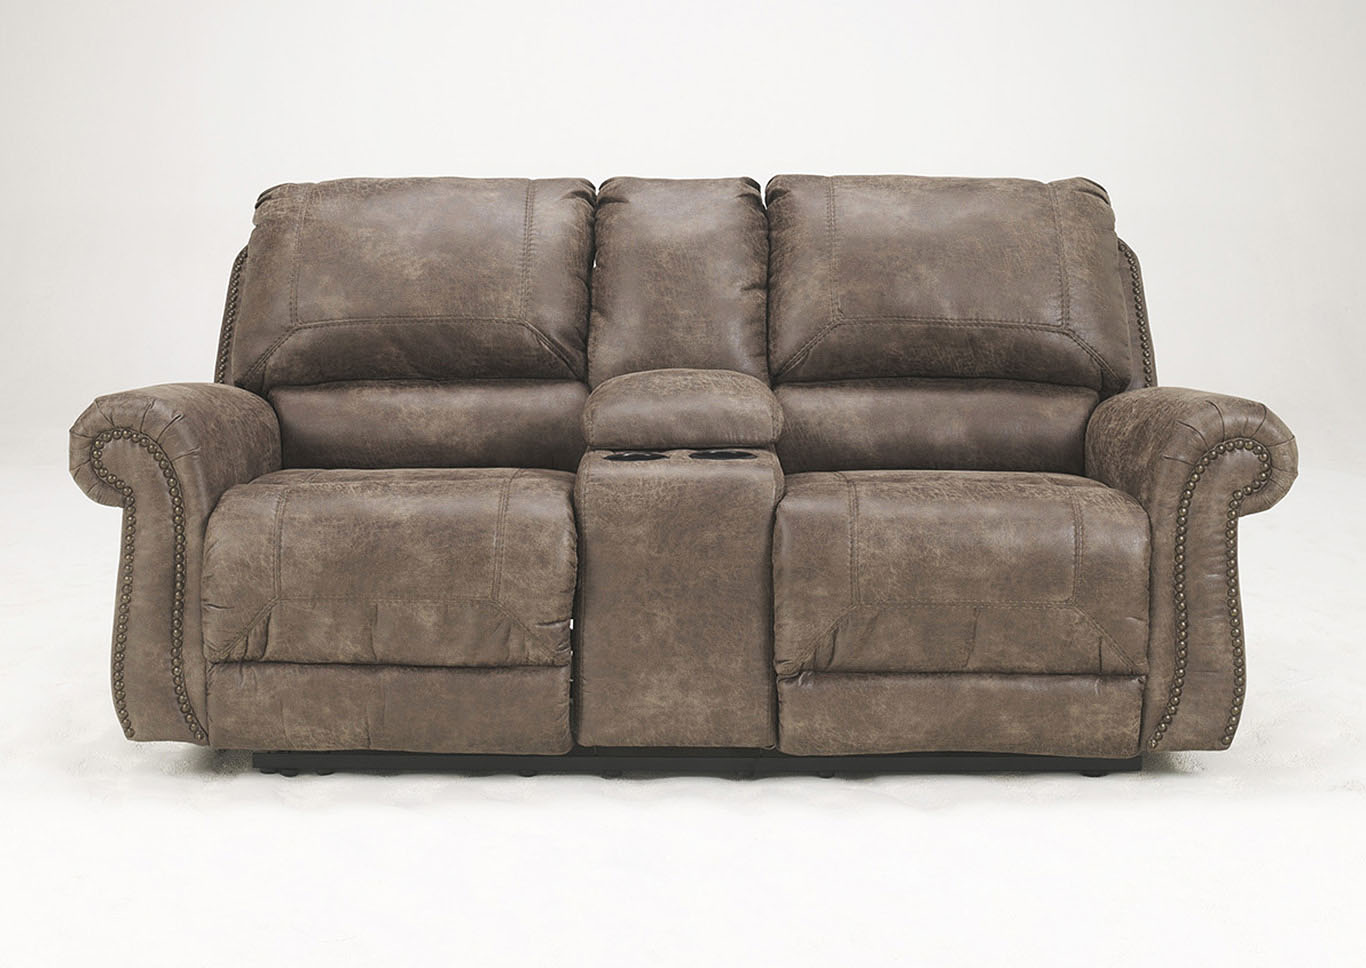 Best Buy Furniture And Mattress Oberson Gunsmoke Double Reclining Power Loveseat W Console